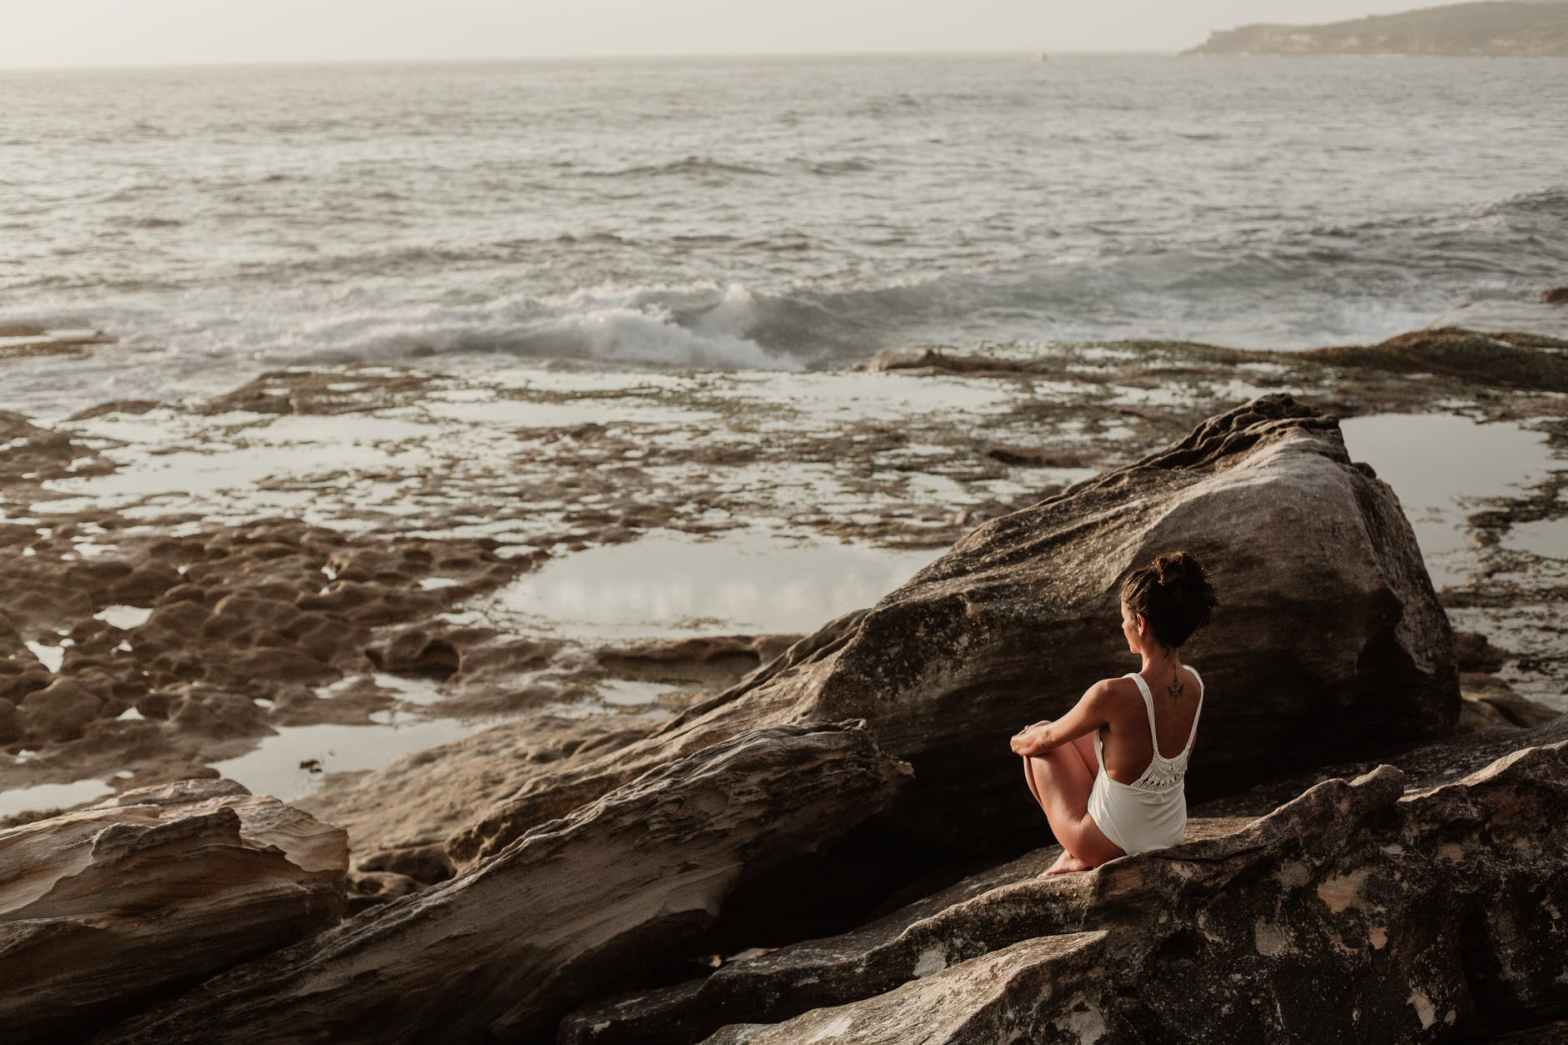 A woman sits on a rock, looking out towards the ocean.